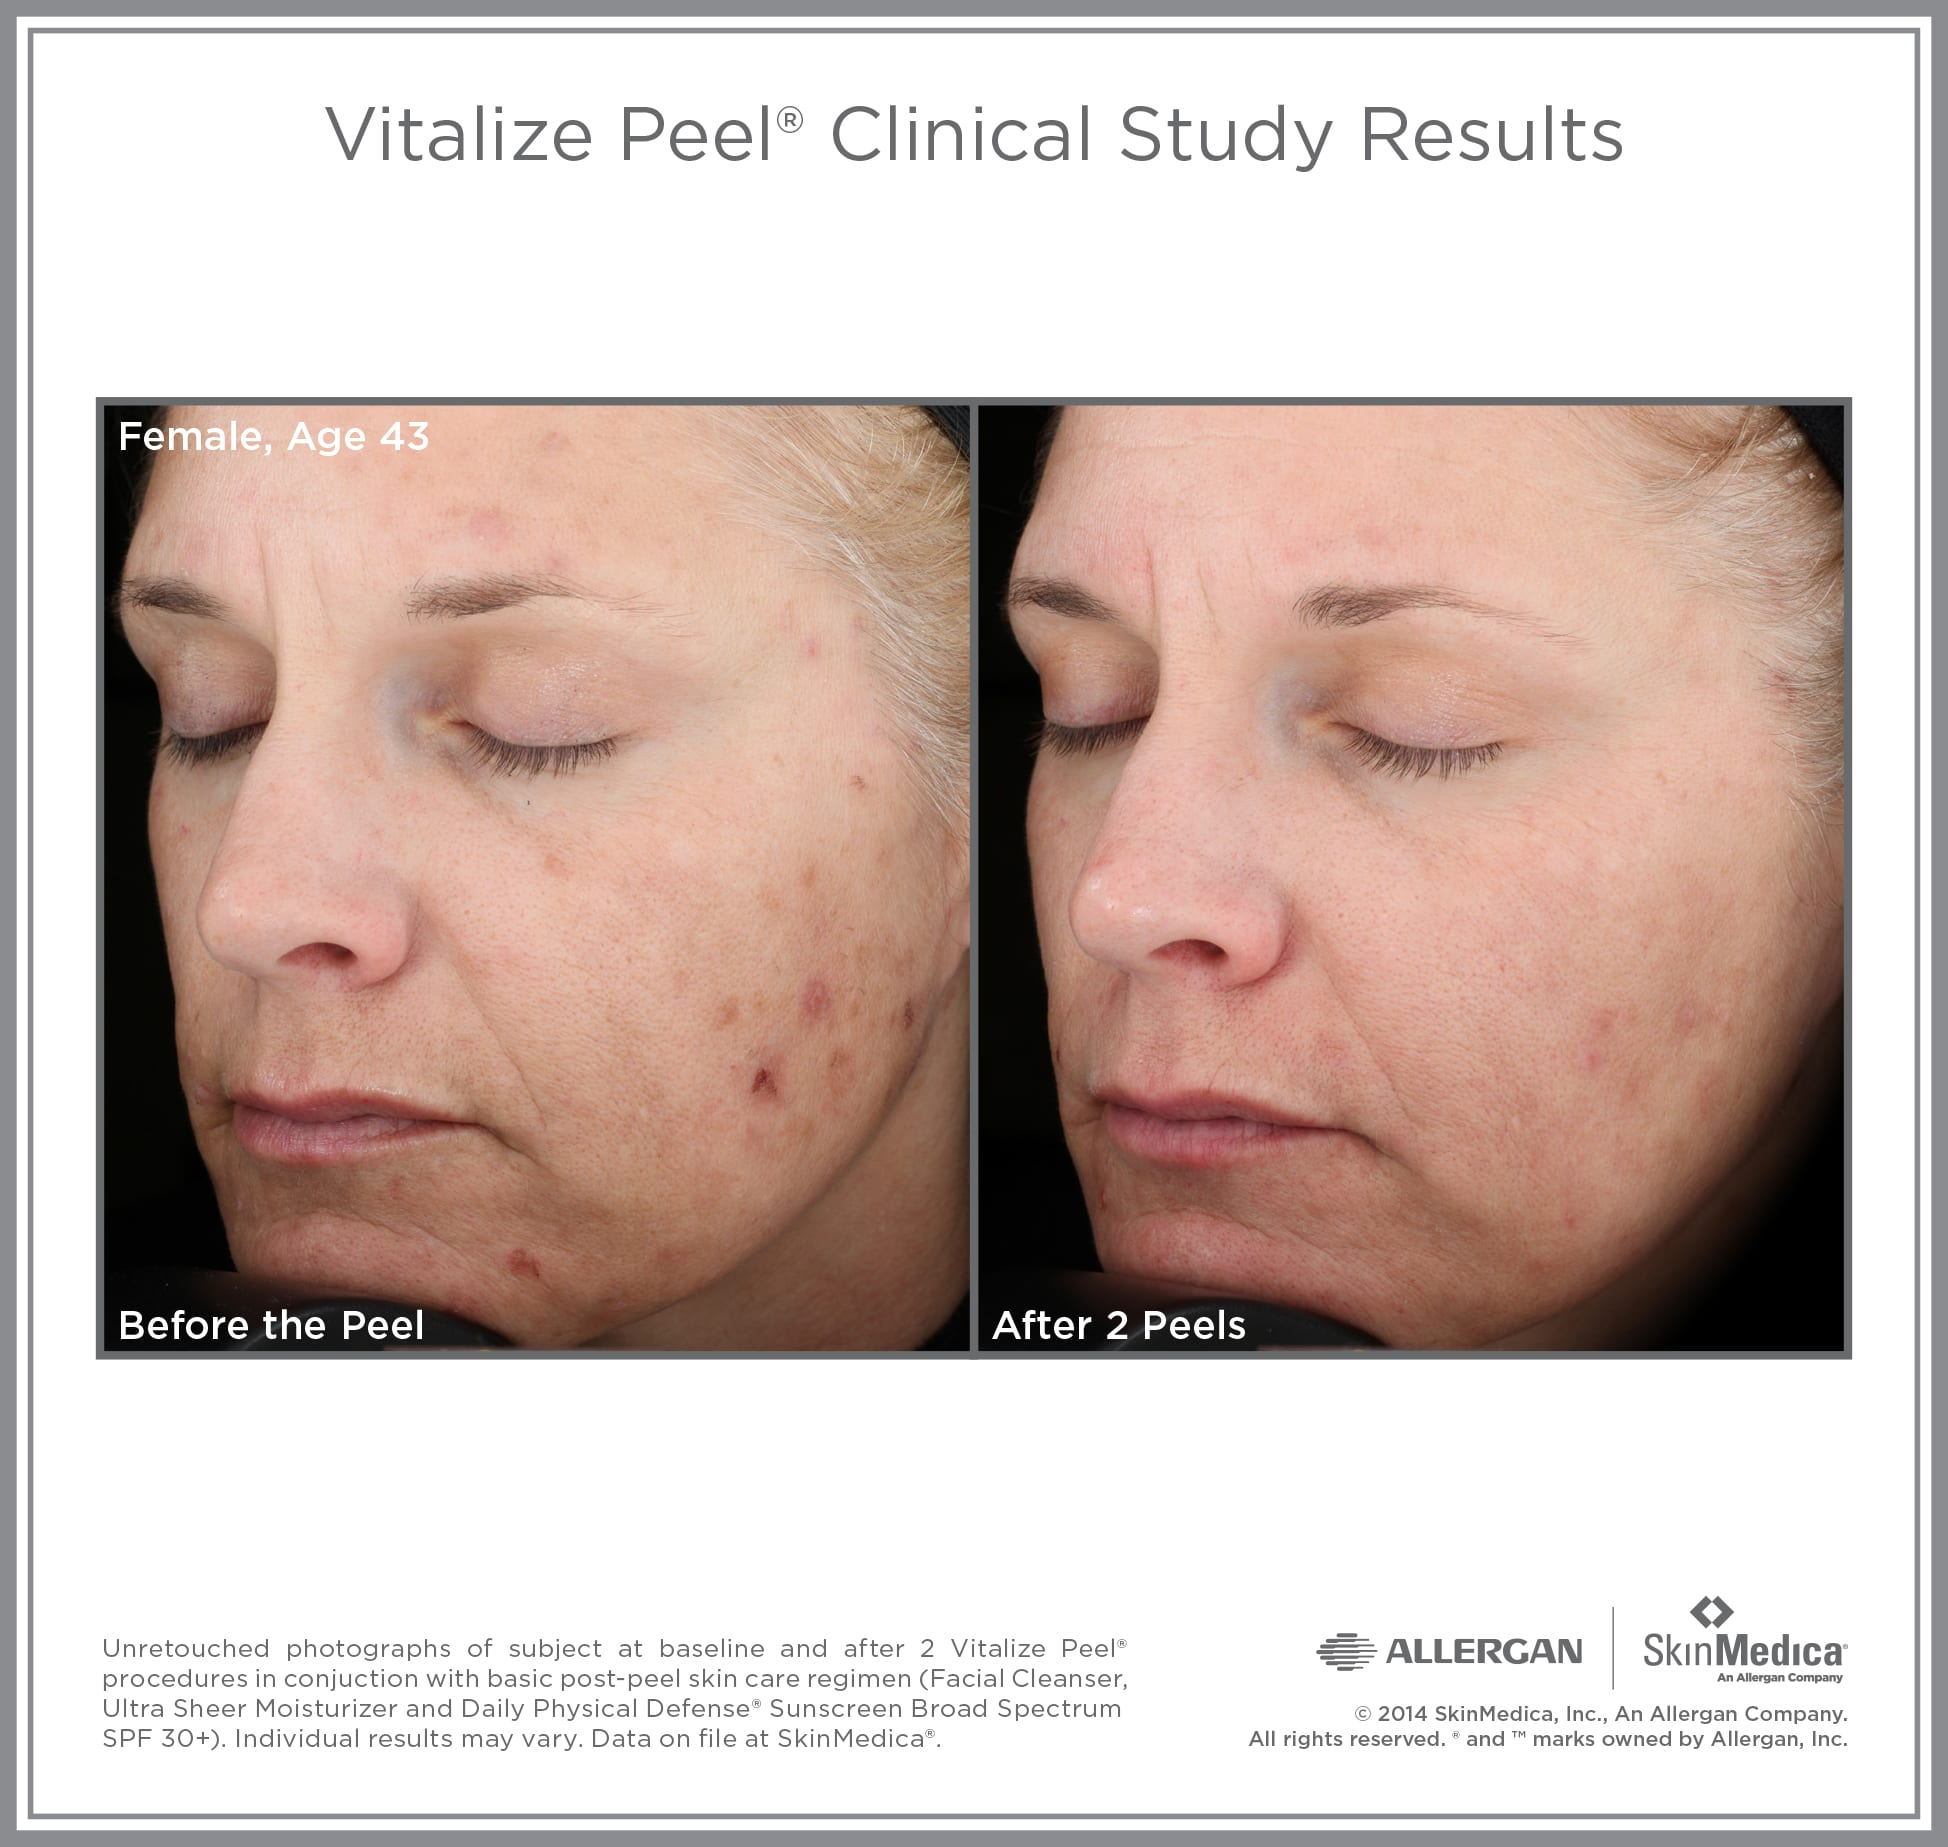 Vit_Peel_CS_Female_Age43